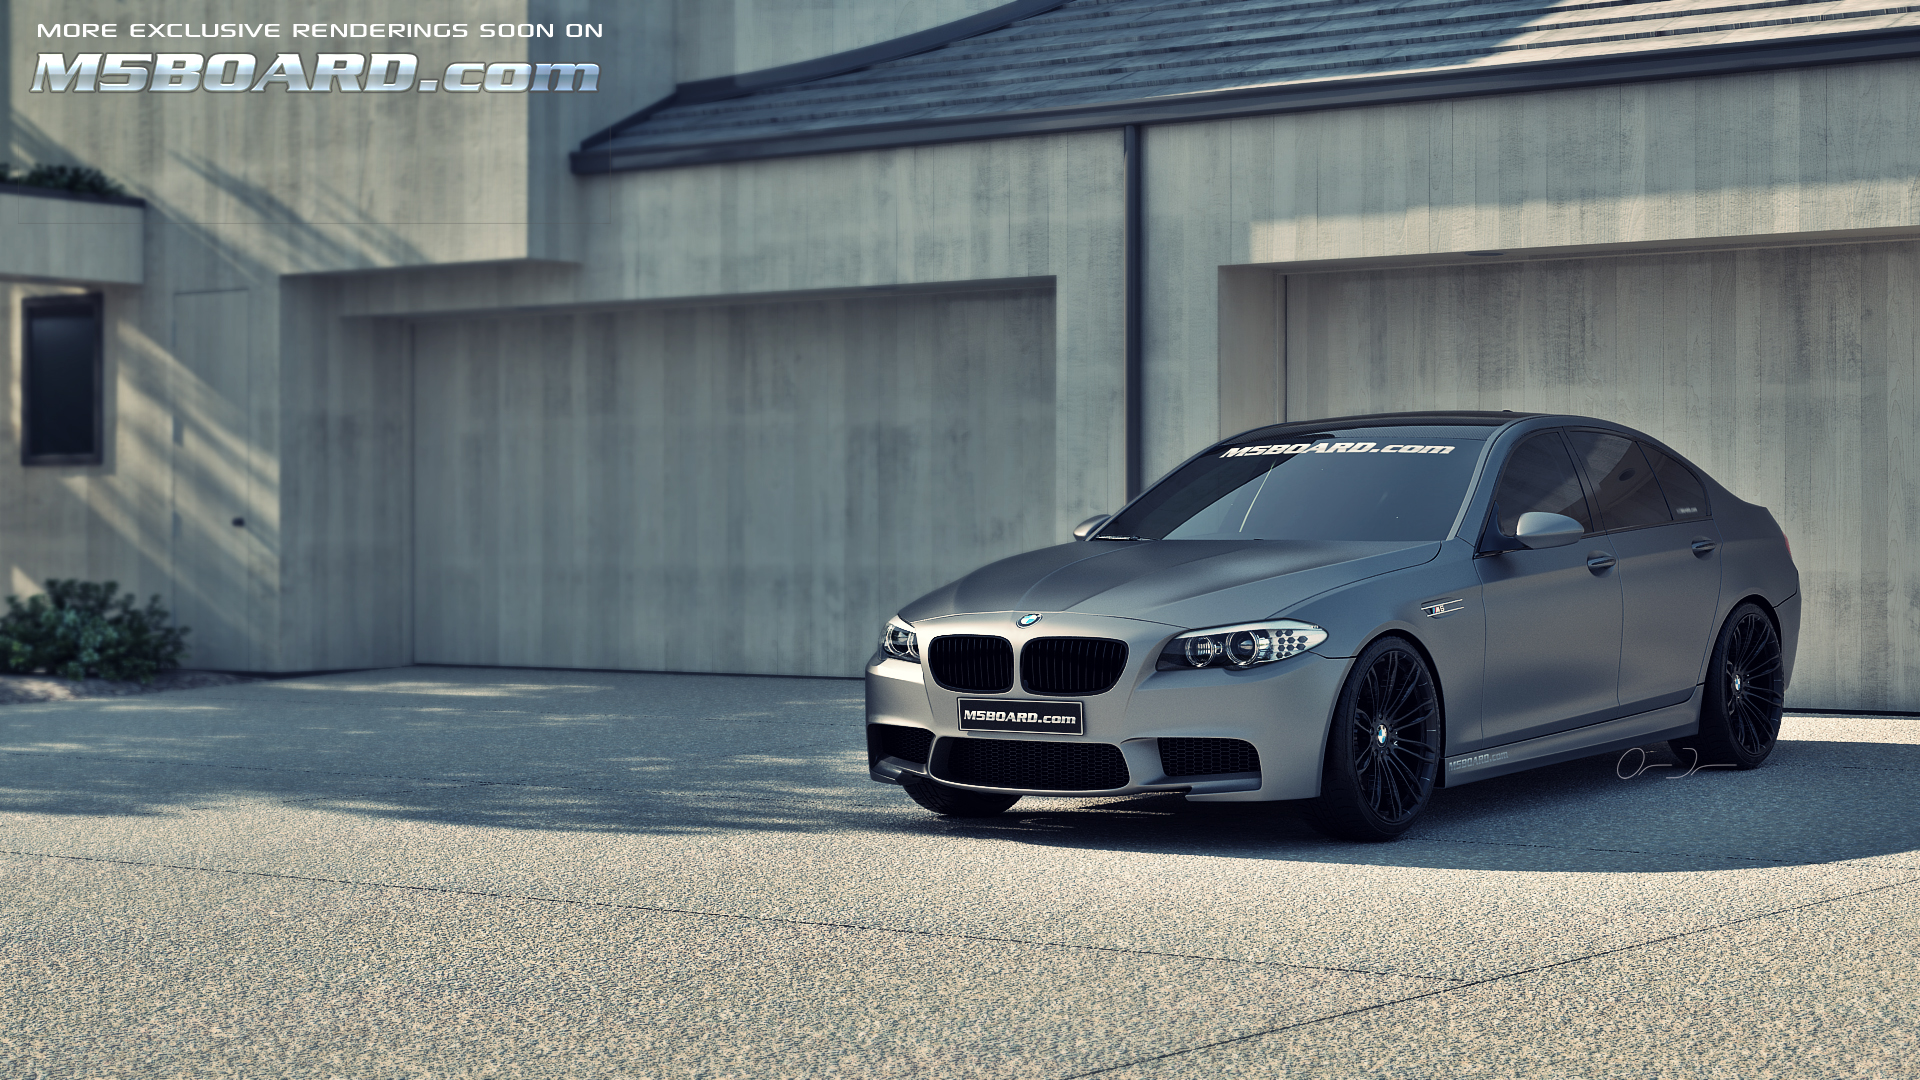 Picture: (3D Studiocomputerrendering): Frozen Gray / Grey BMW M5 F10 Individual with black wheels in front of four car garage (and updated front spoiler, reardiffuser and normal hood)-frozengraybmwm5f10blackwheelsm5boardcom.jpg